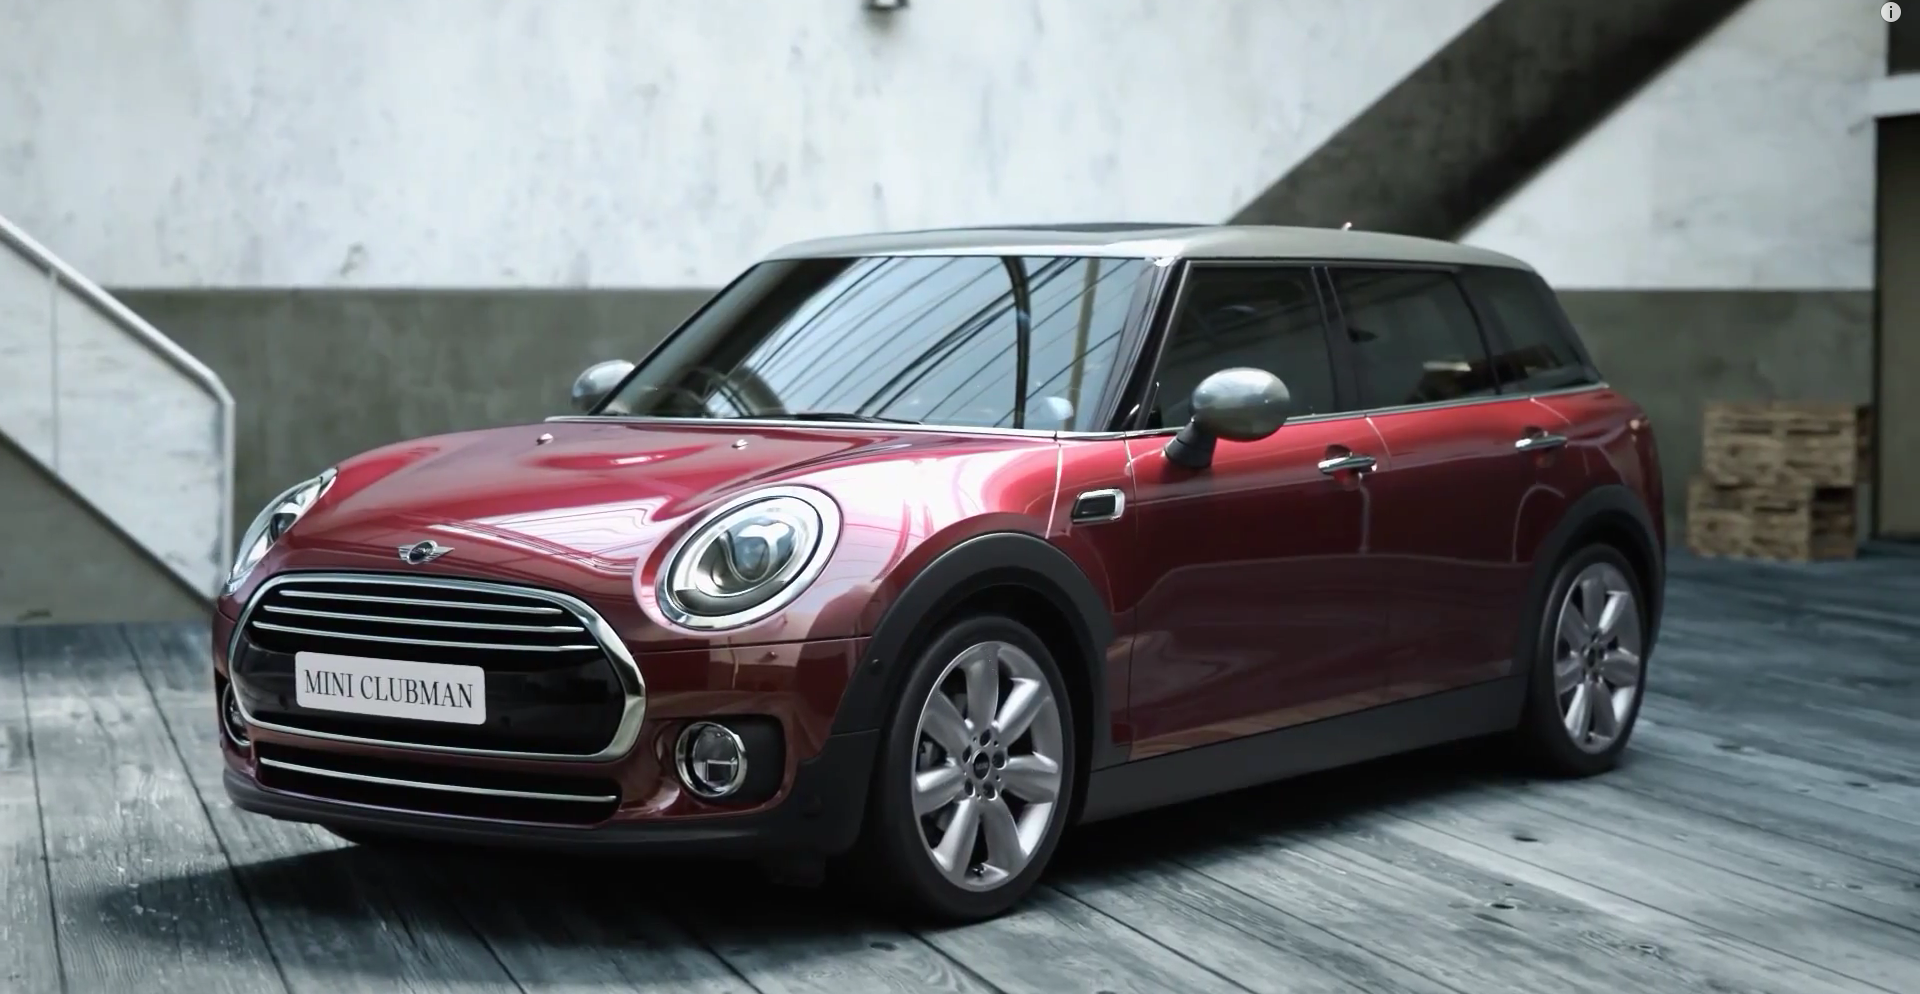 Mini Clubman 2017 price, Specification, Concept